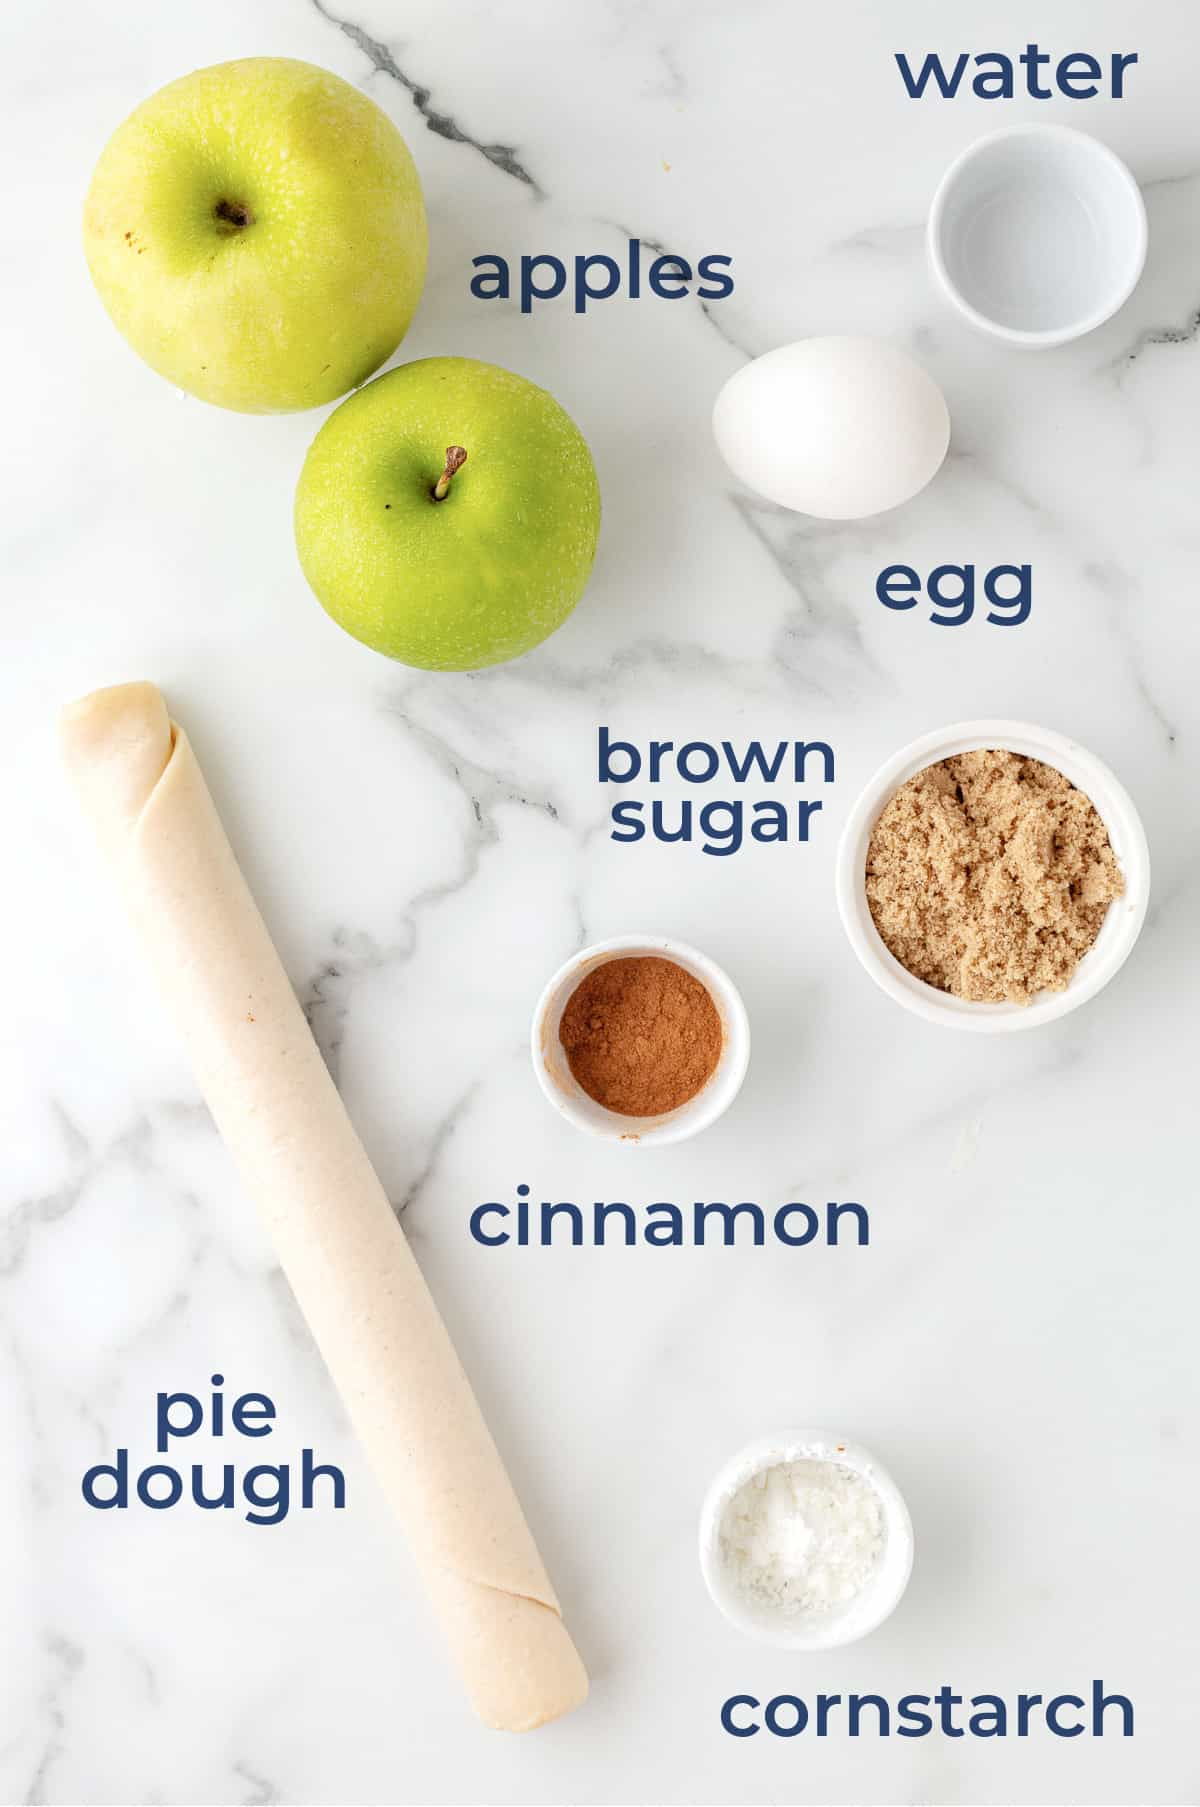 Ingredients to make homemade mini apple pies in the air fryer